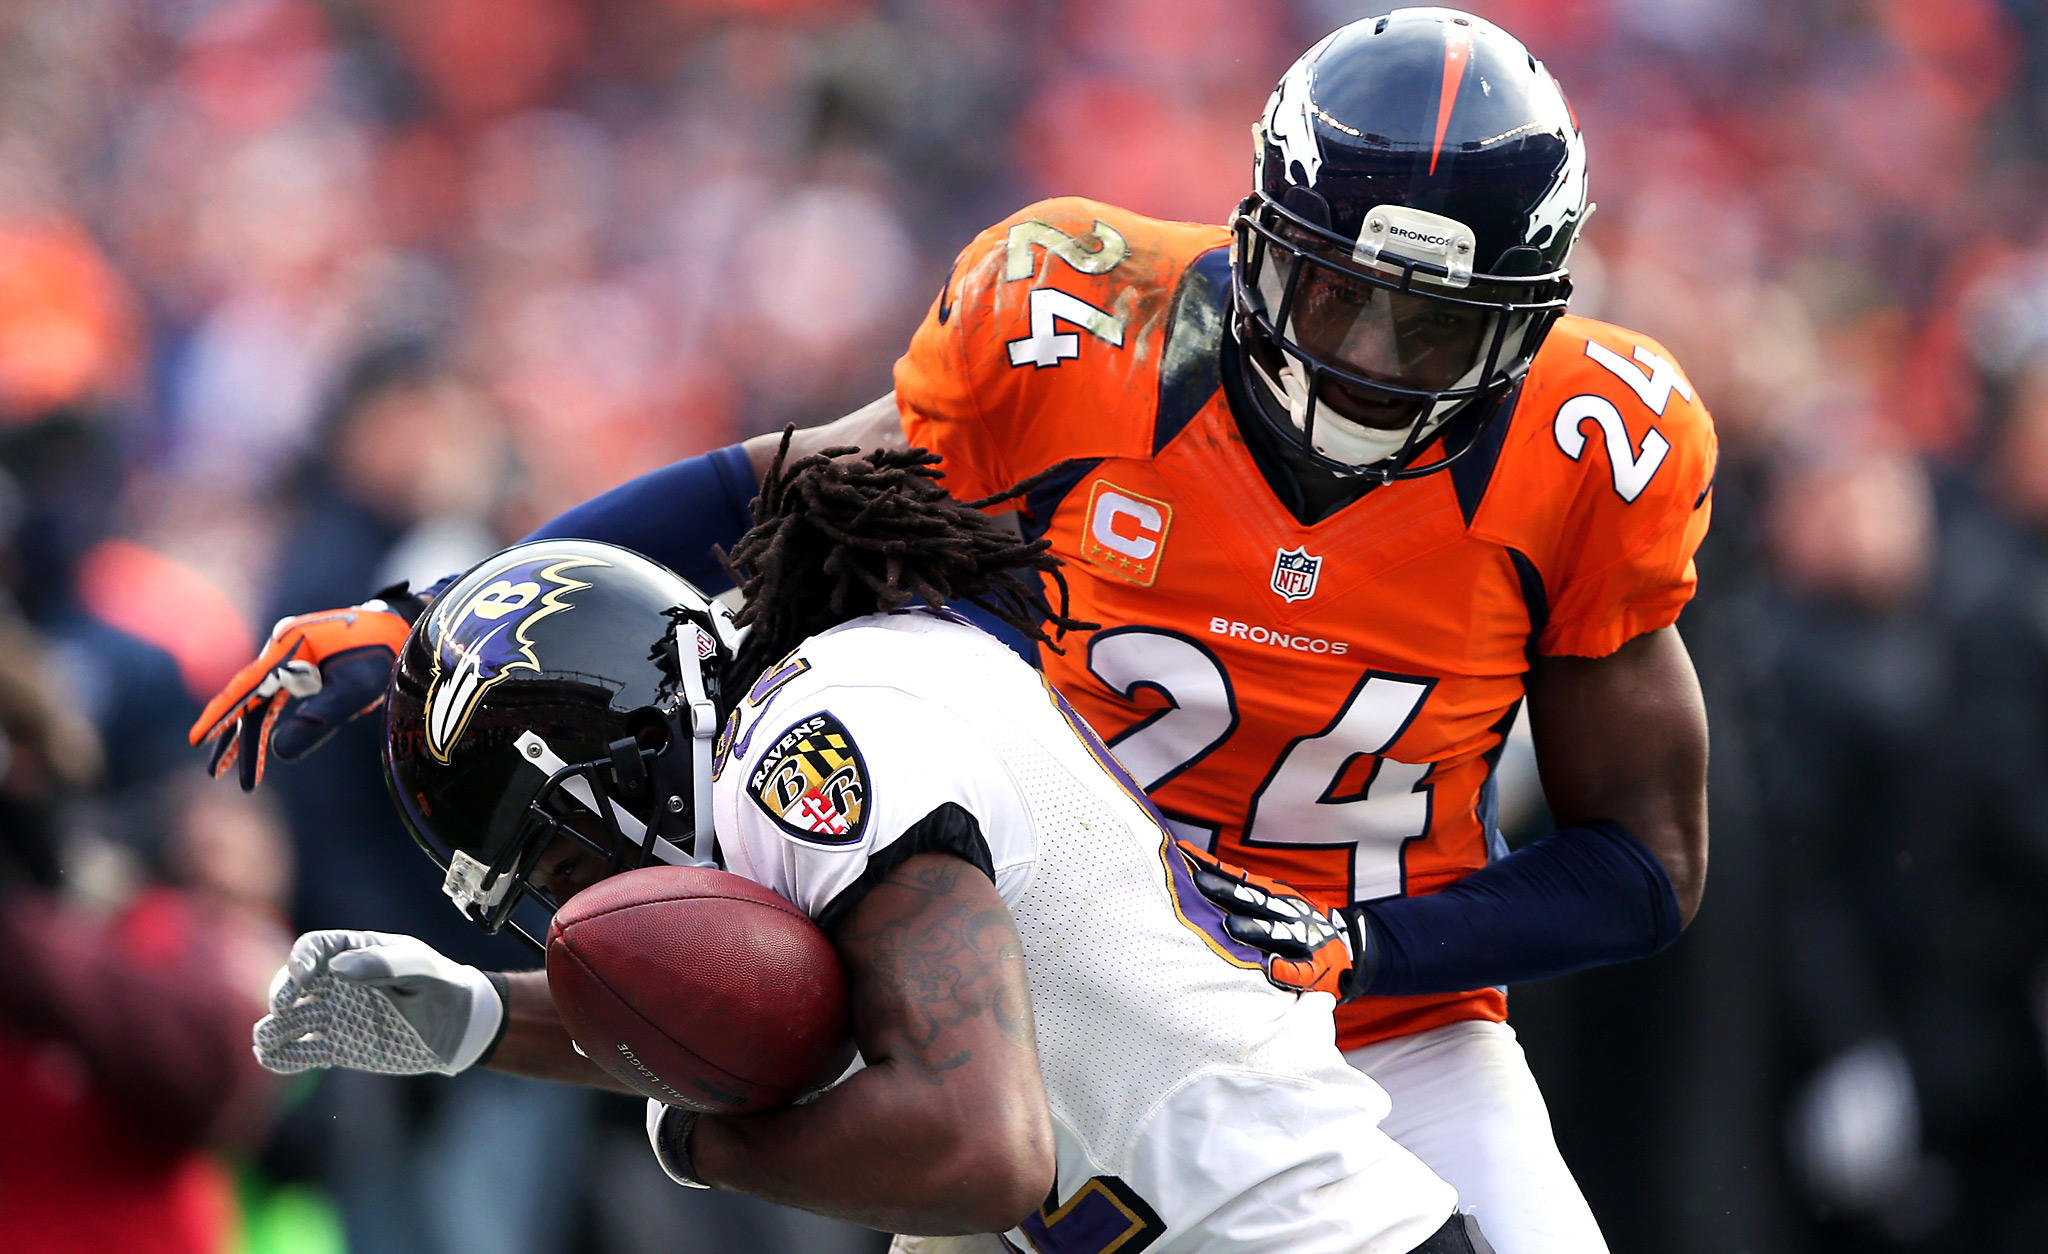 #NFLRank No. 25, Defense: Champ Bailey